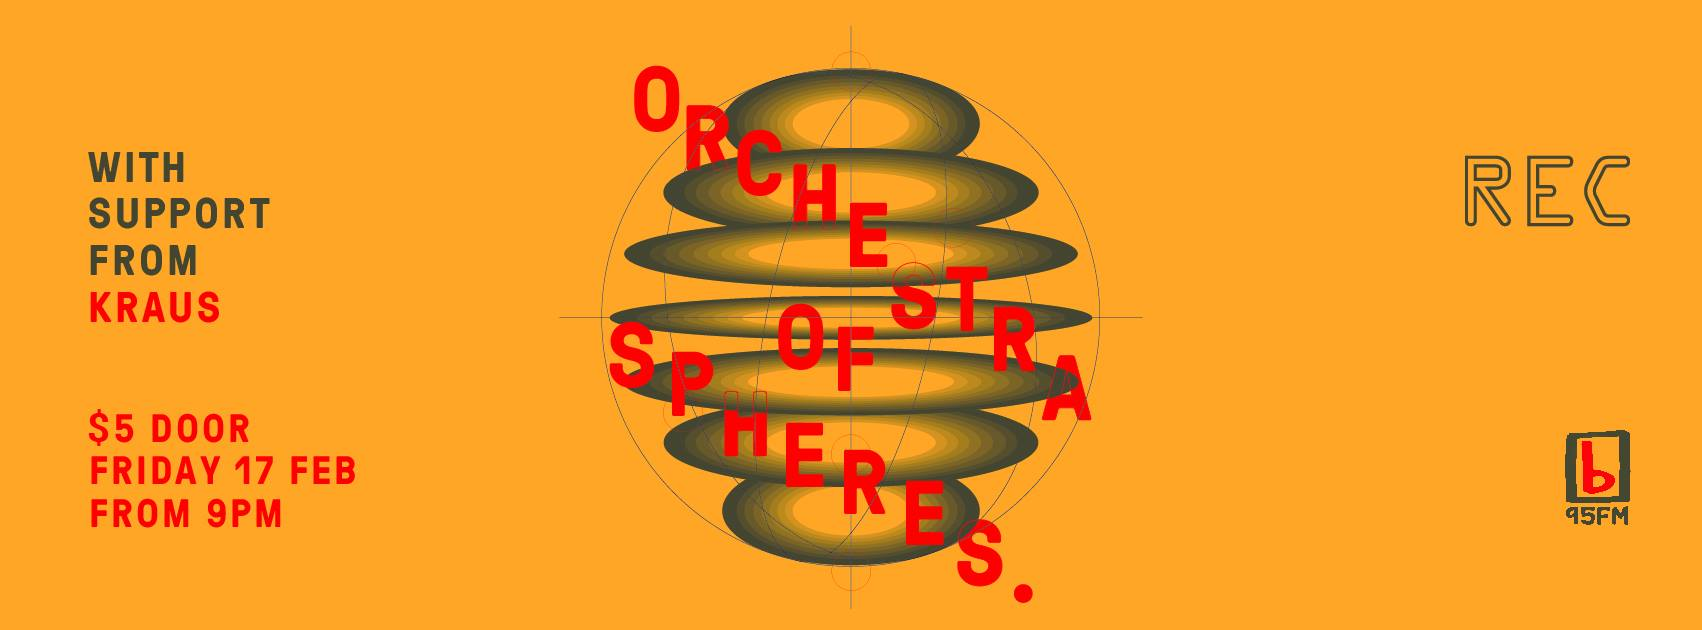 Orchestra Of Spheres with Kraus